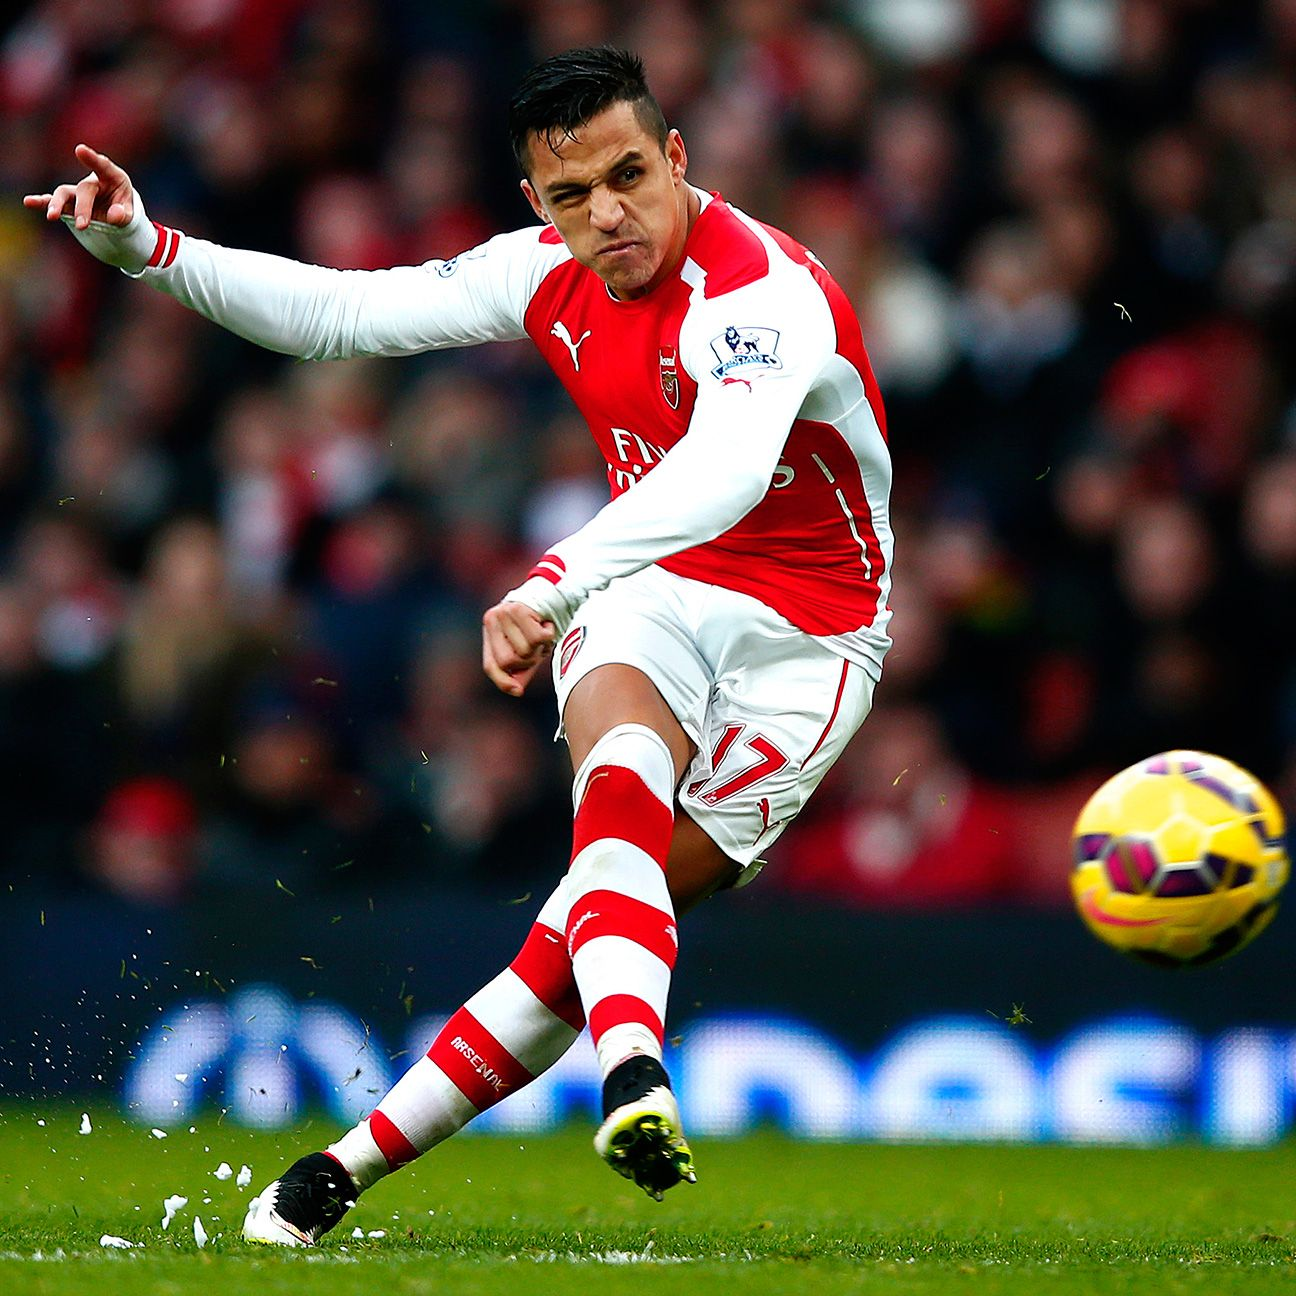 Alexis Sanchez may be Arsenal's leading scorer, but he is far from being the sole provider at the Emirates.